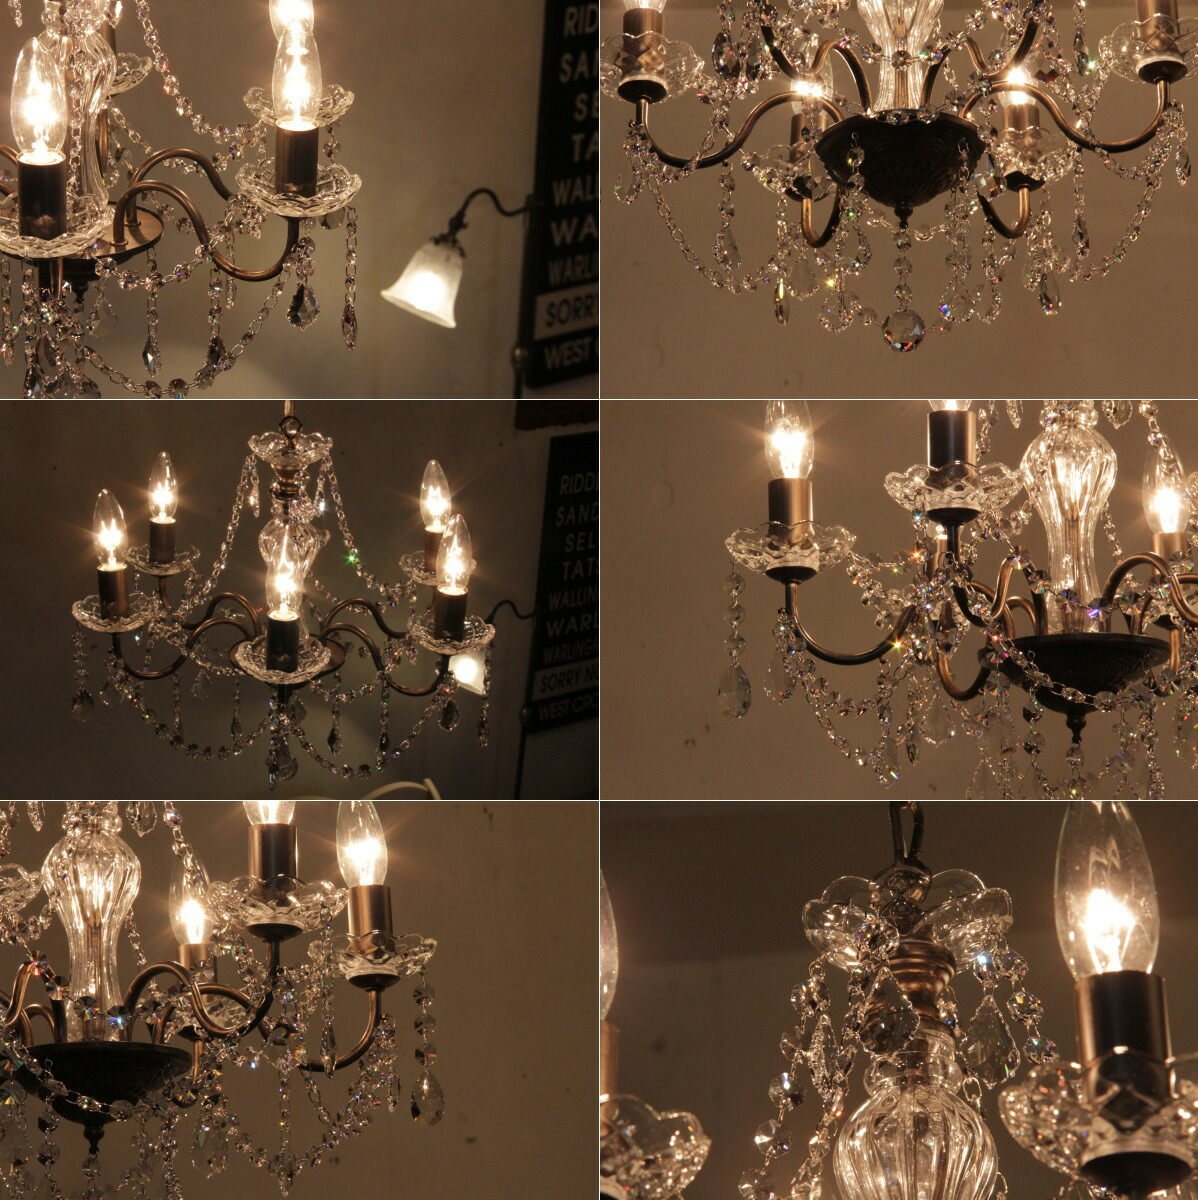 Swarovski Crystal Dollhouse Chandelier: Auc-can-doll: OS-001/6 SWDX Swarovski Crystal Chandeliers